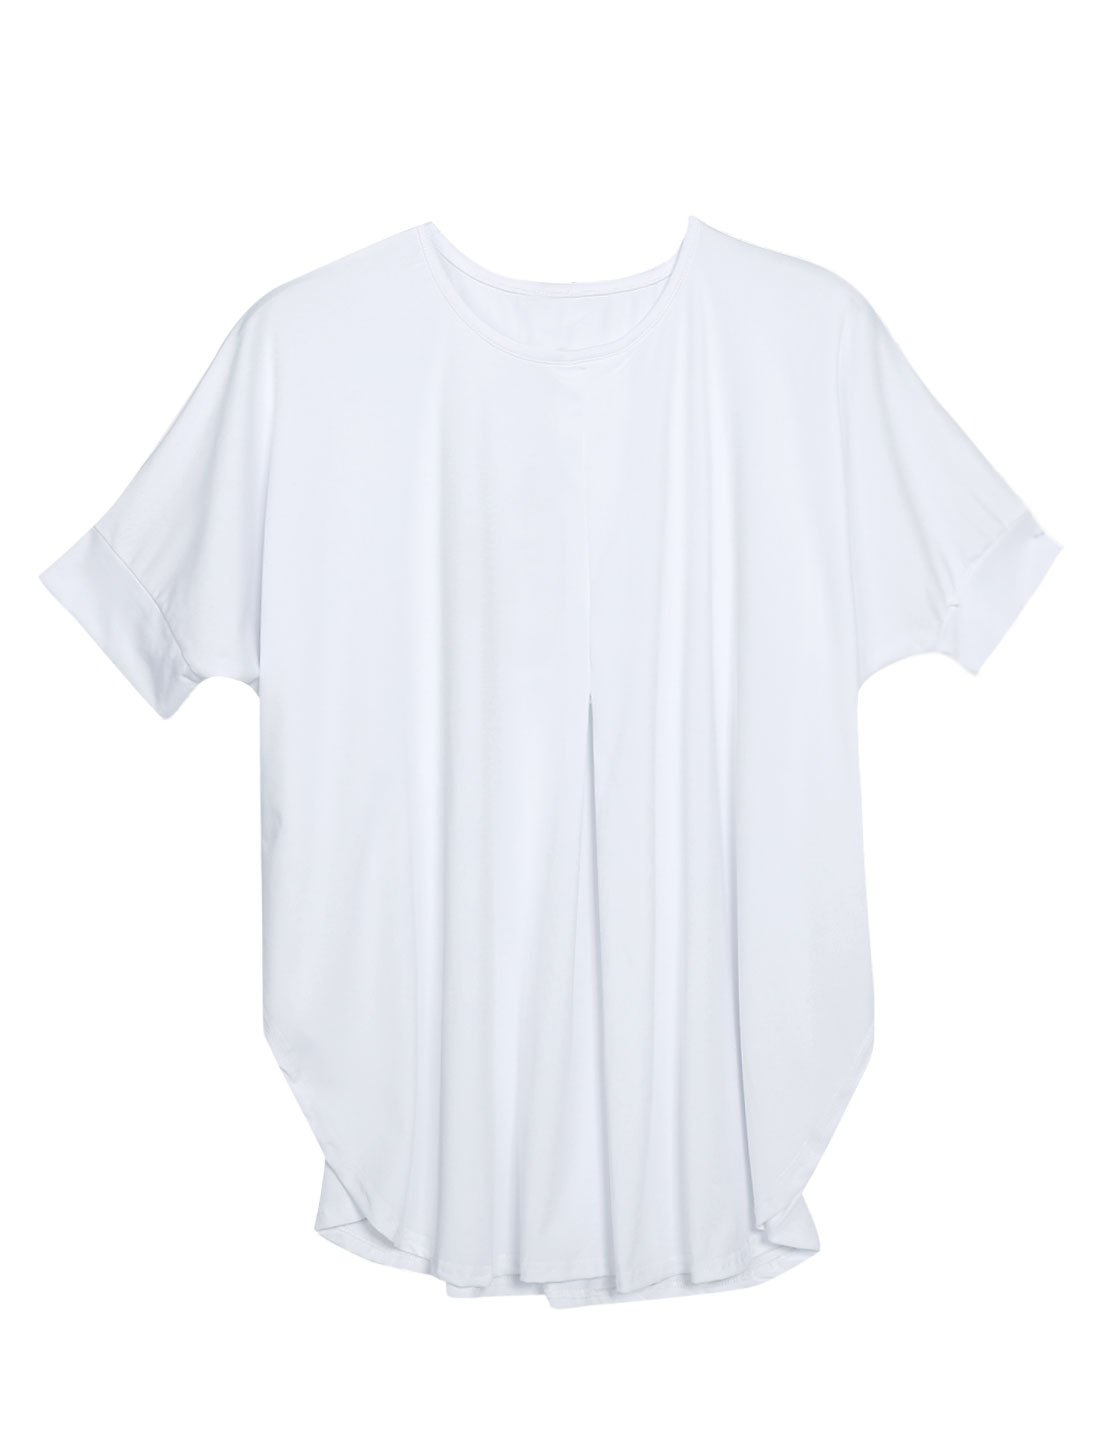 Women Elbow Batwing Sleeves Loose Fit Round Hem Casual Tops White XS